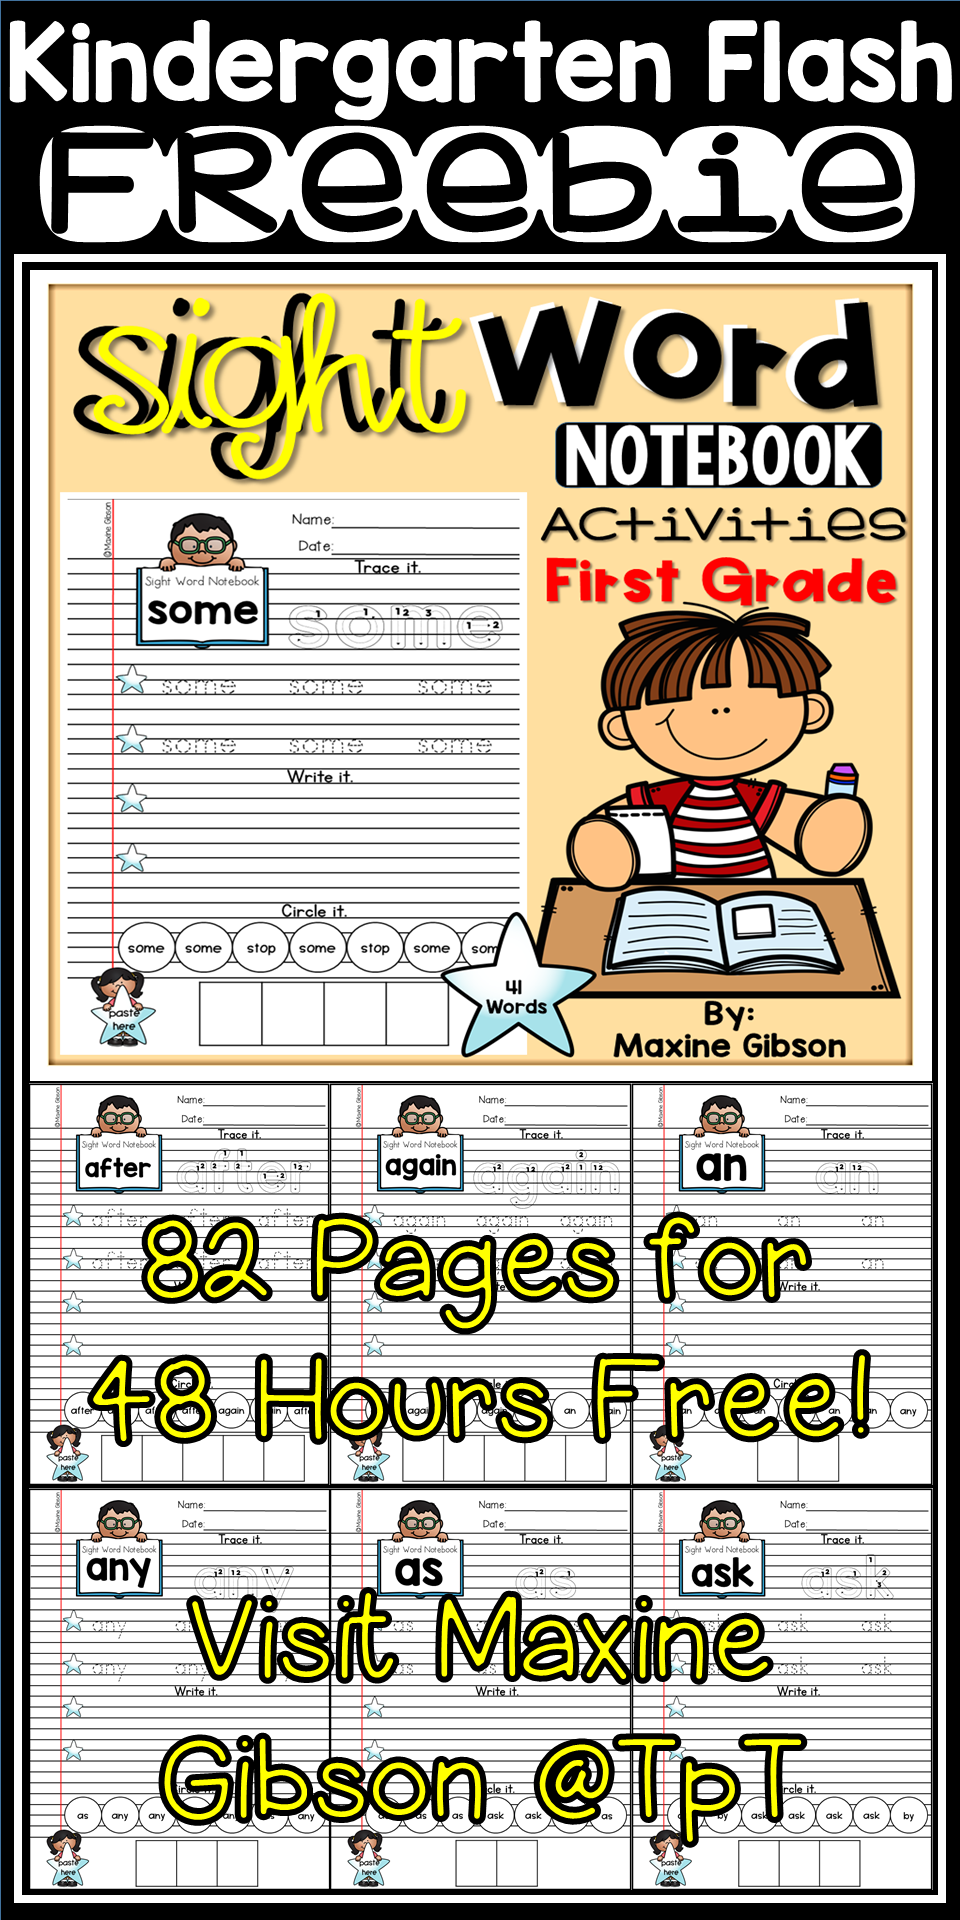 Sight Word Notebook Activities First Grade | TpT FREE LESSONS ...